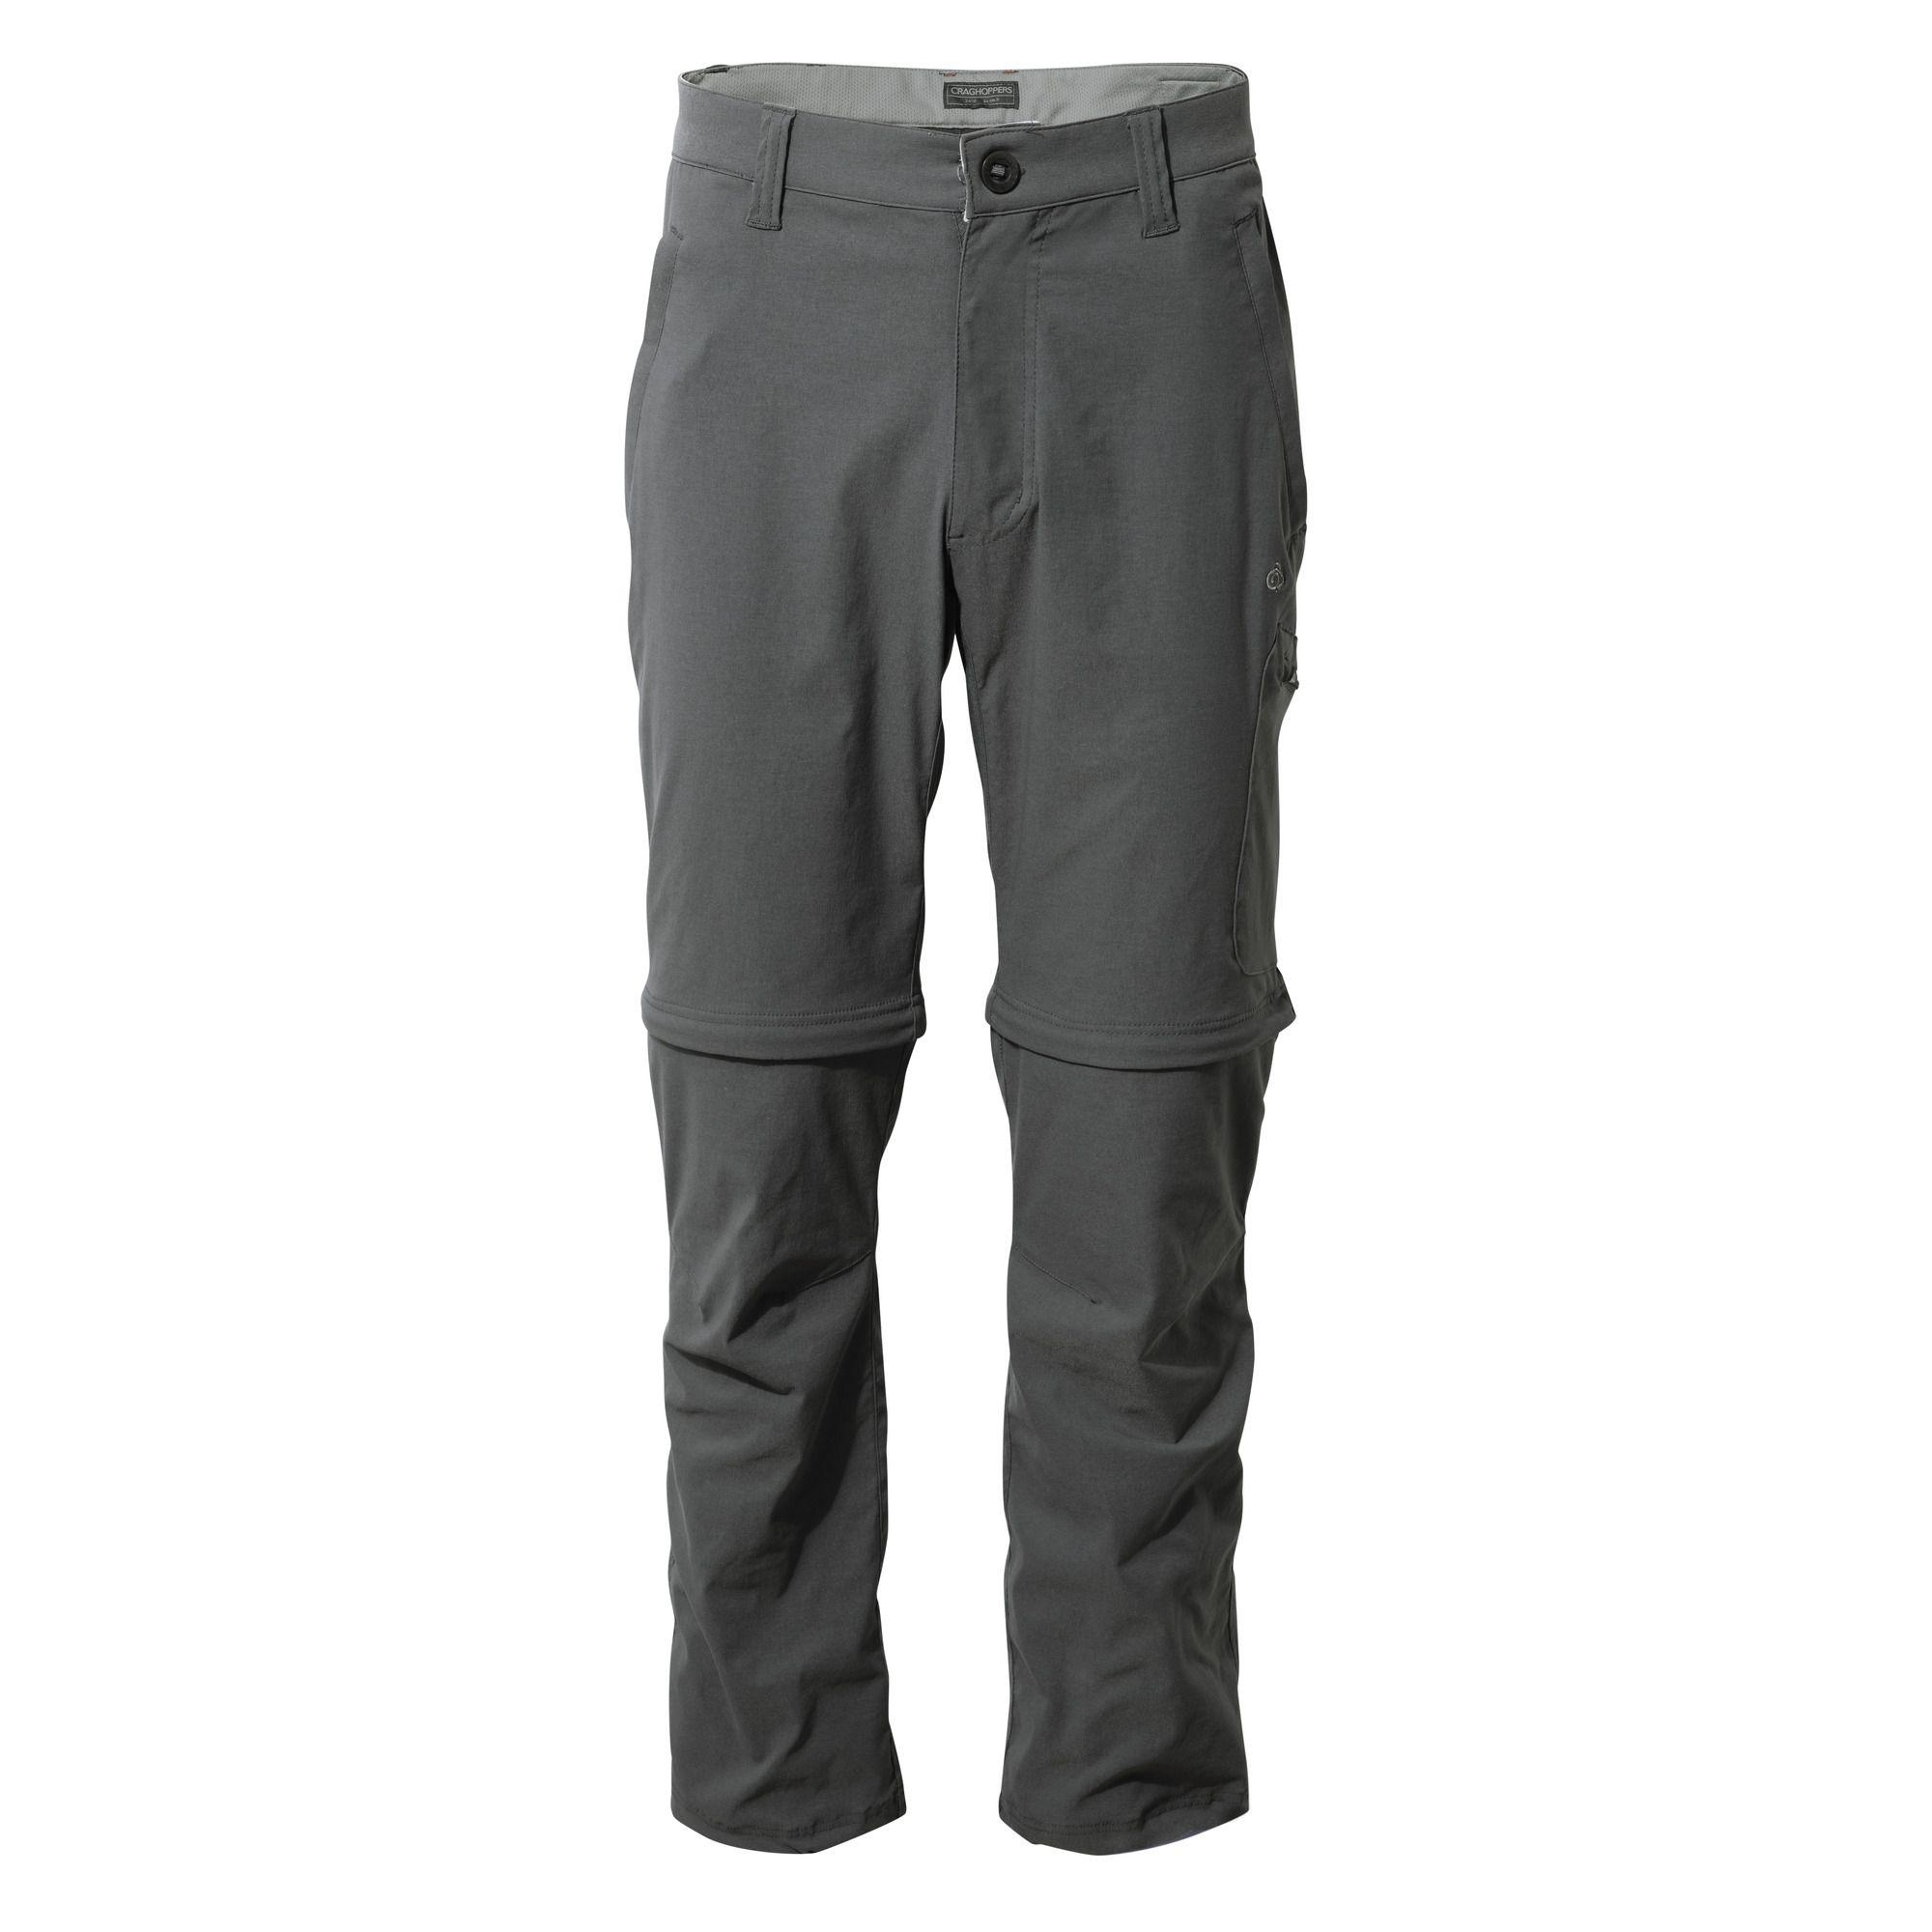 Craghoppers Elephant Nosilife Pro Convertible Trousers in Grey (Grey) for Men